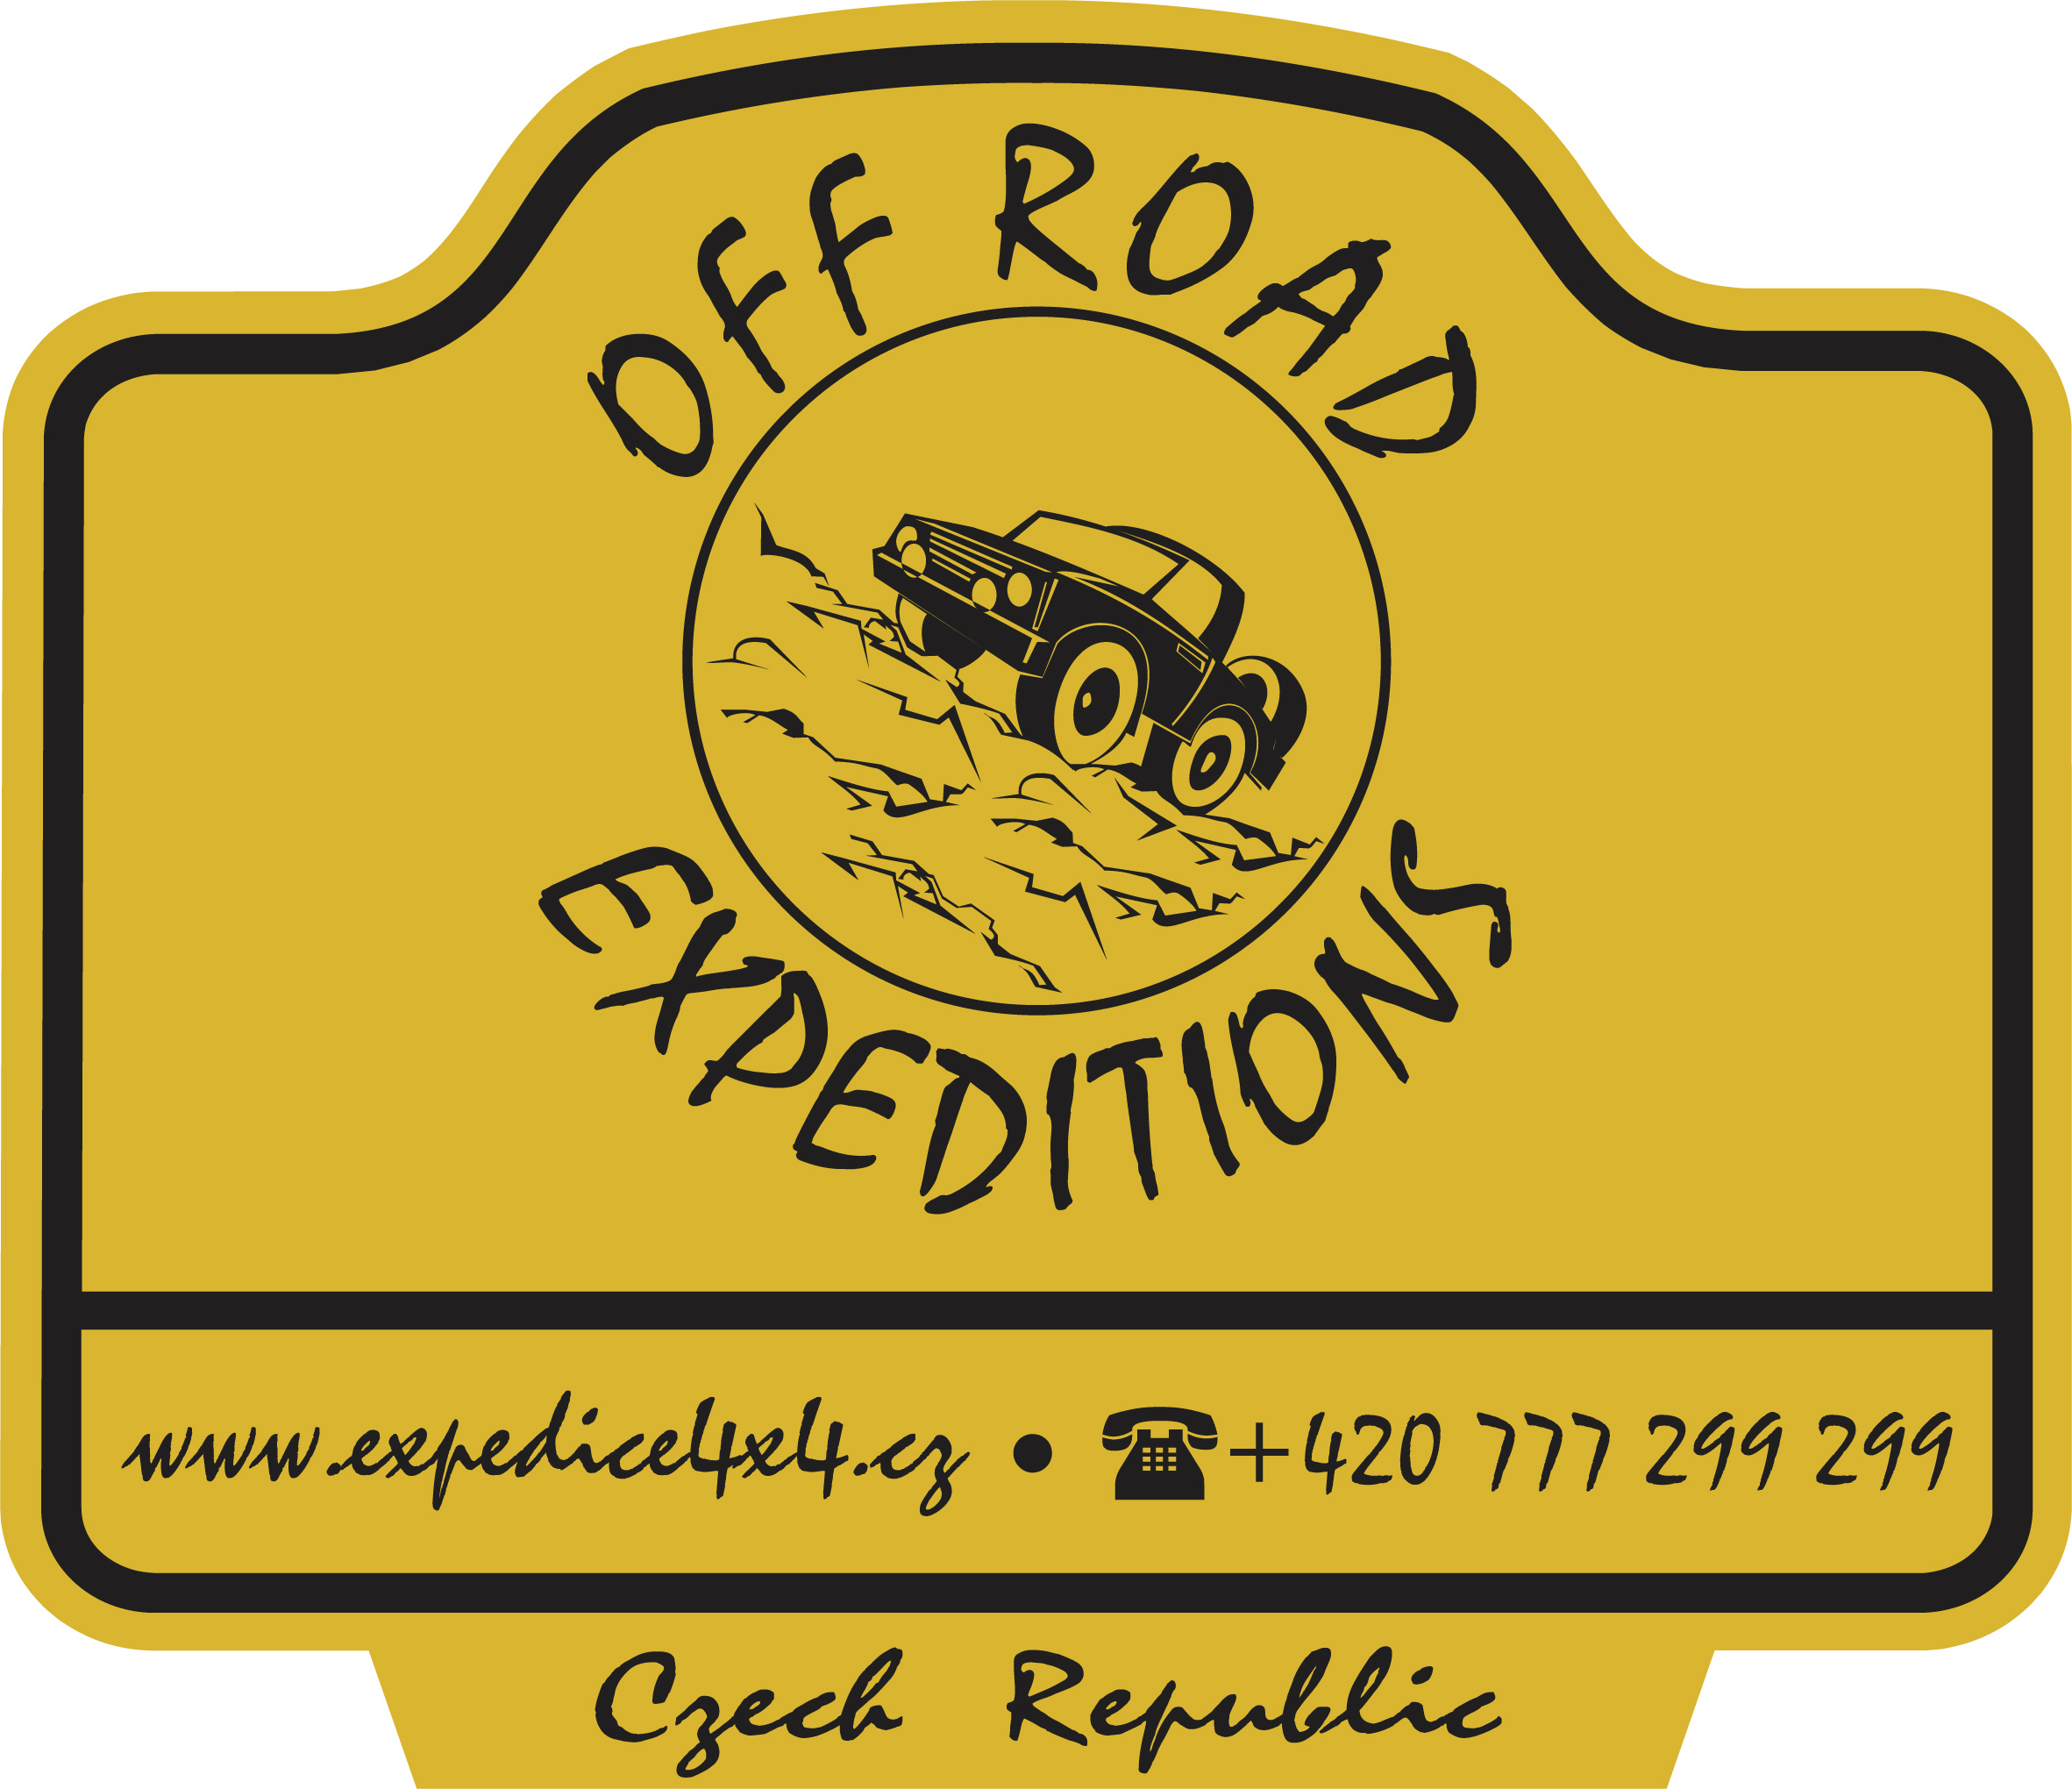 OFF ROAD EXPEDITIONS